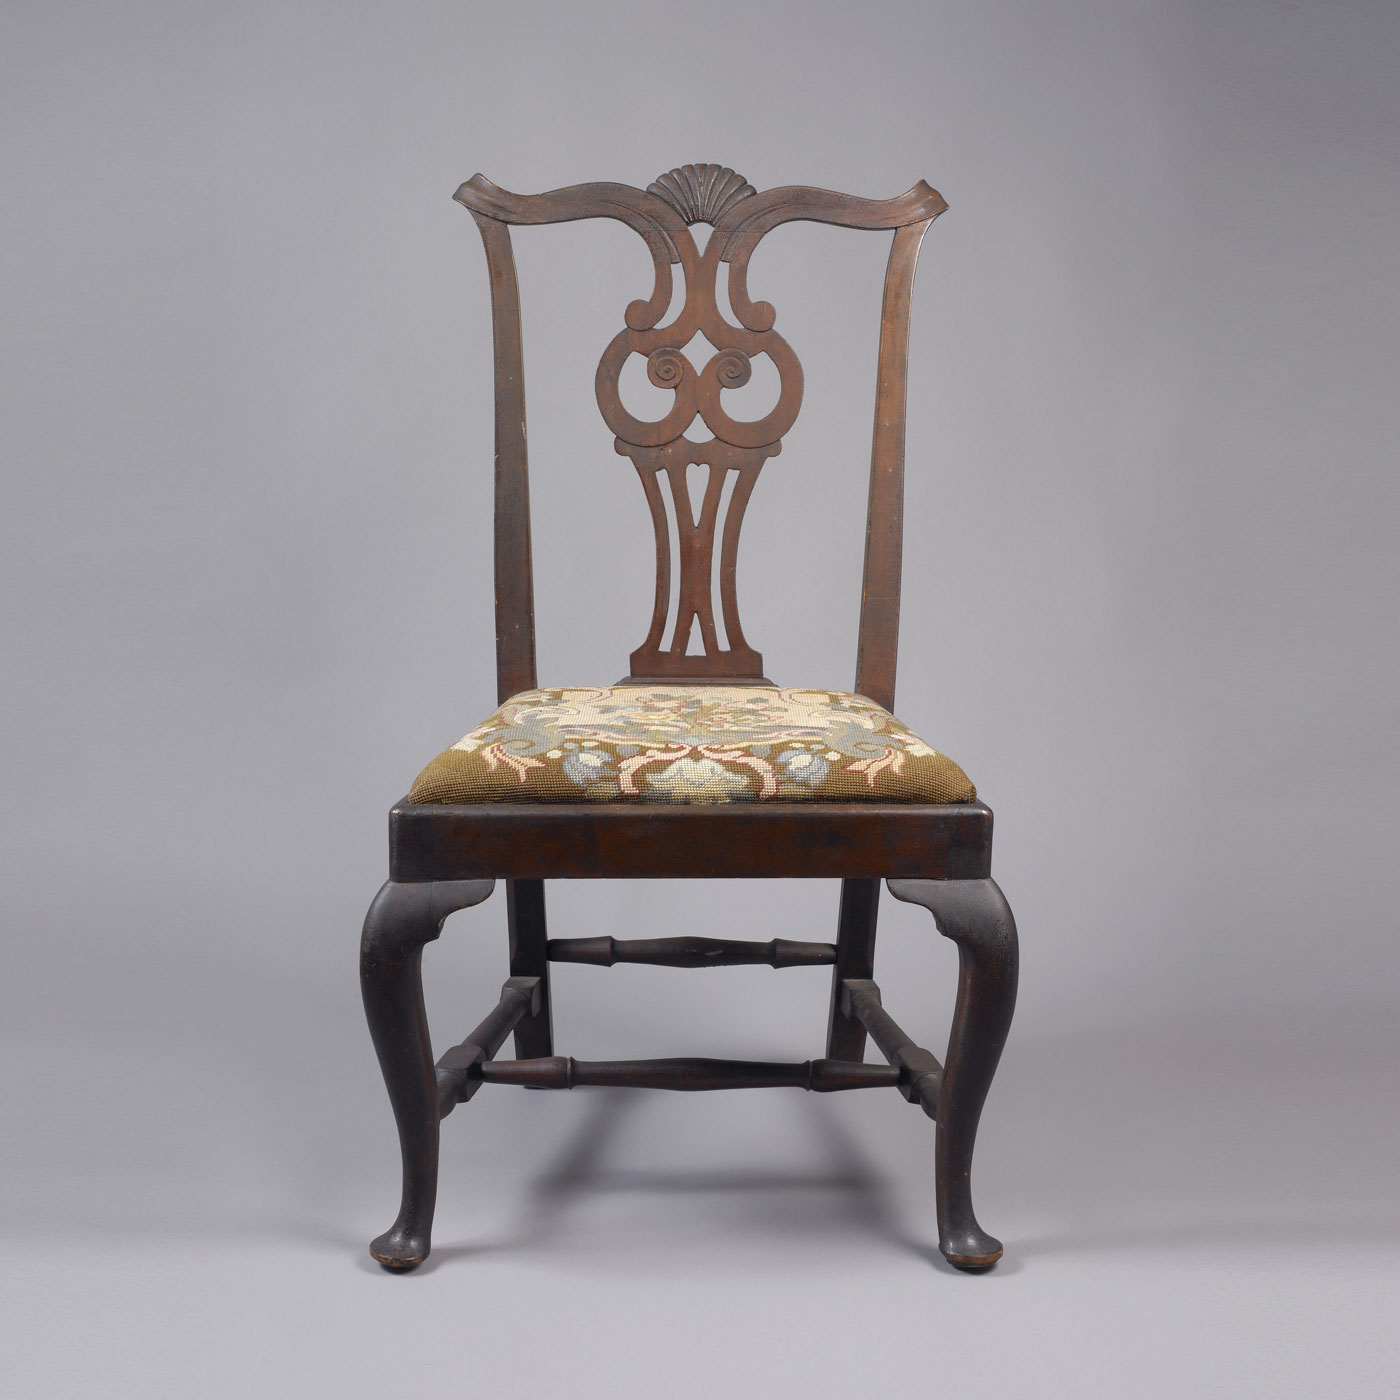 Transitional Chippendale Chair - Transitional Chippendale Chair • Jeffrey Tillou Antiques